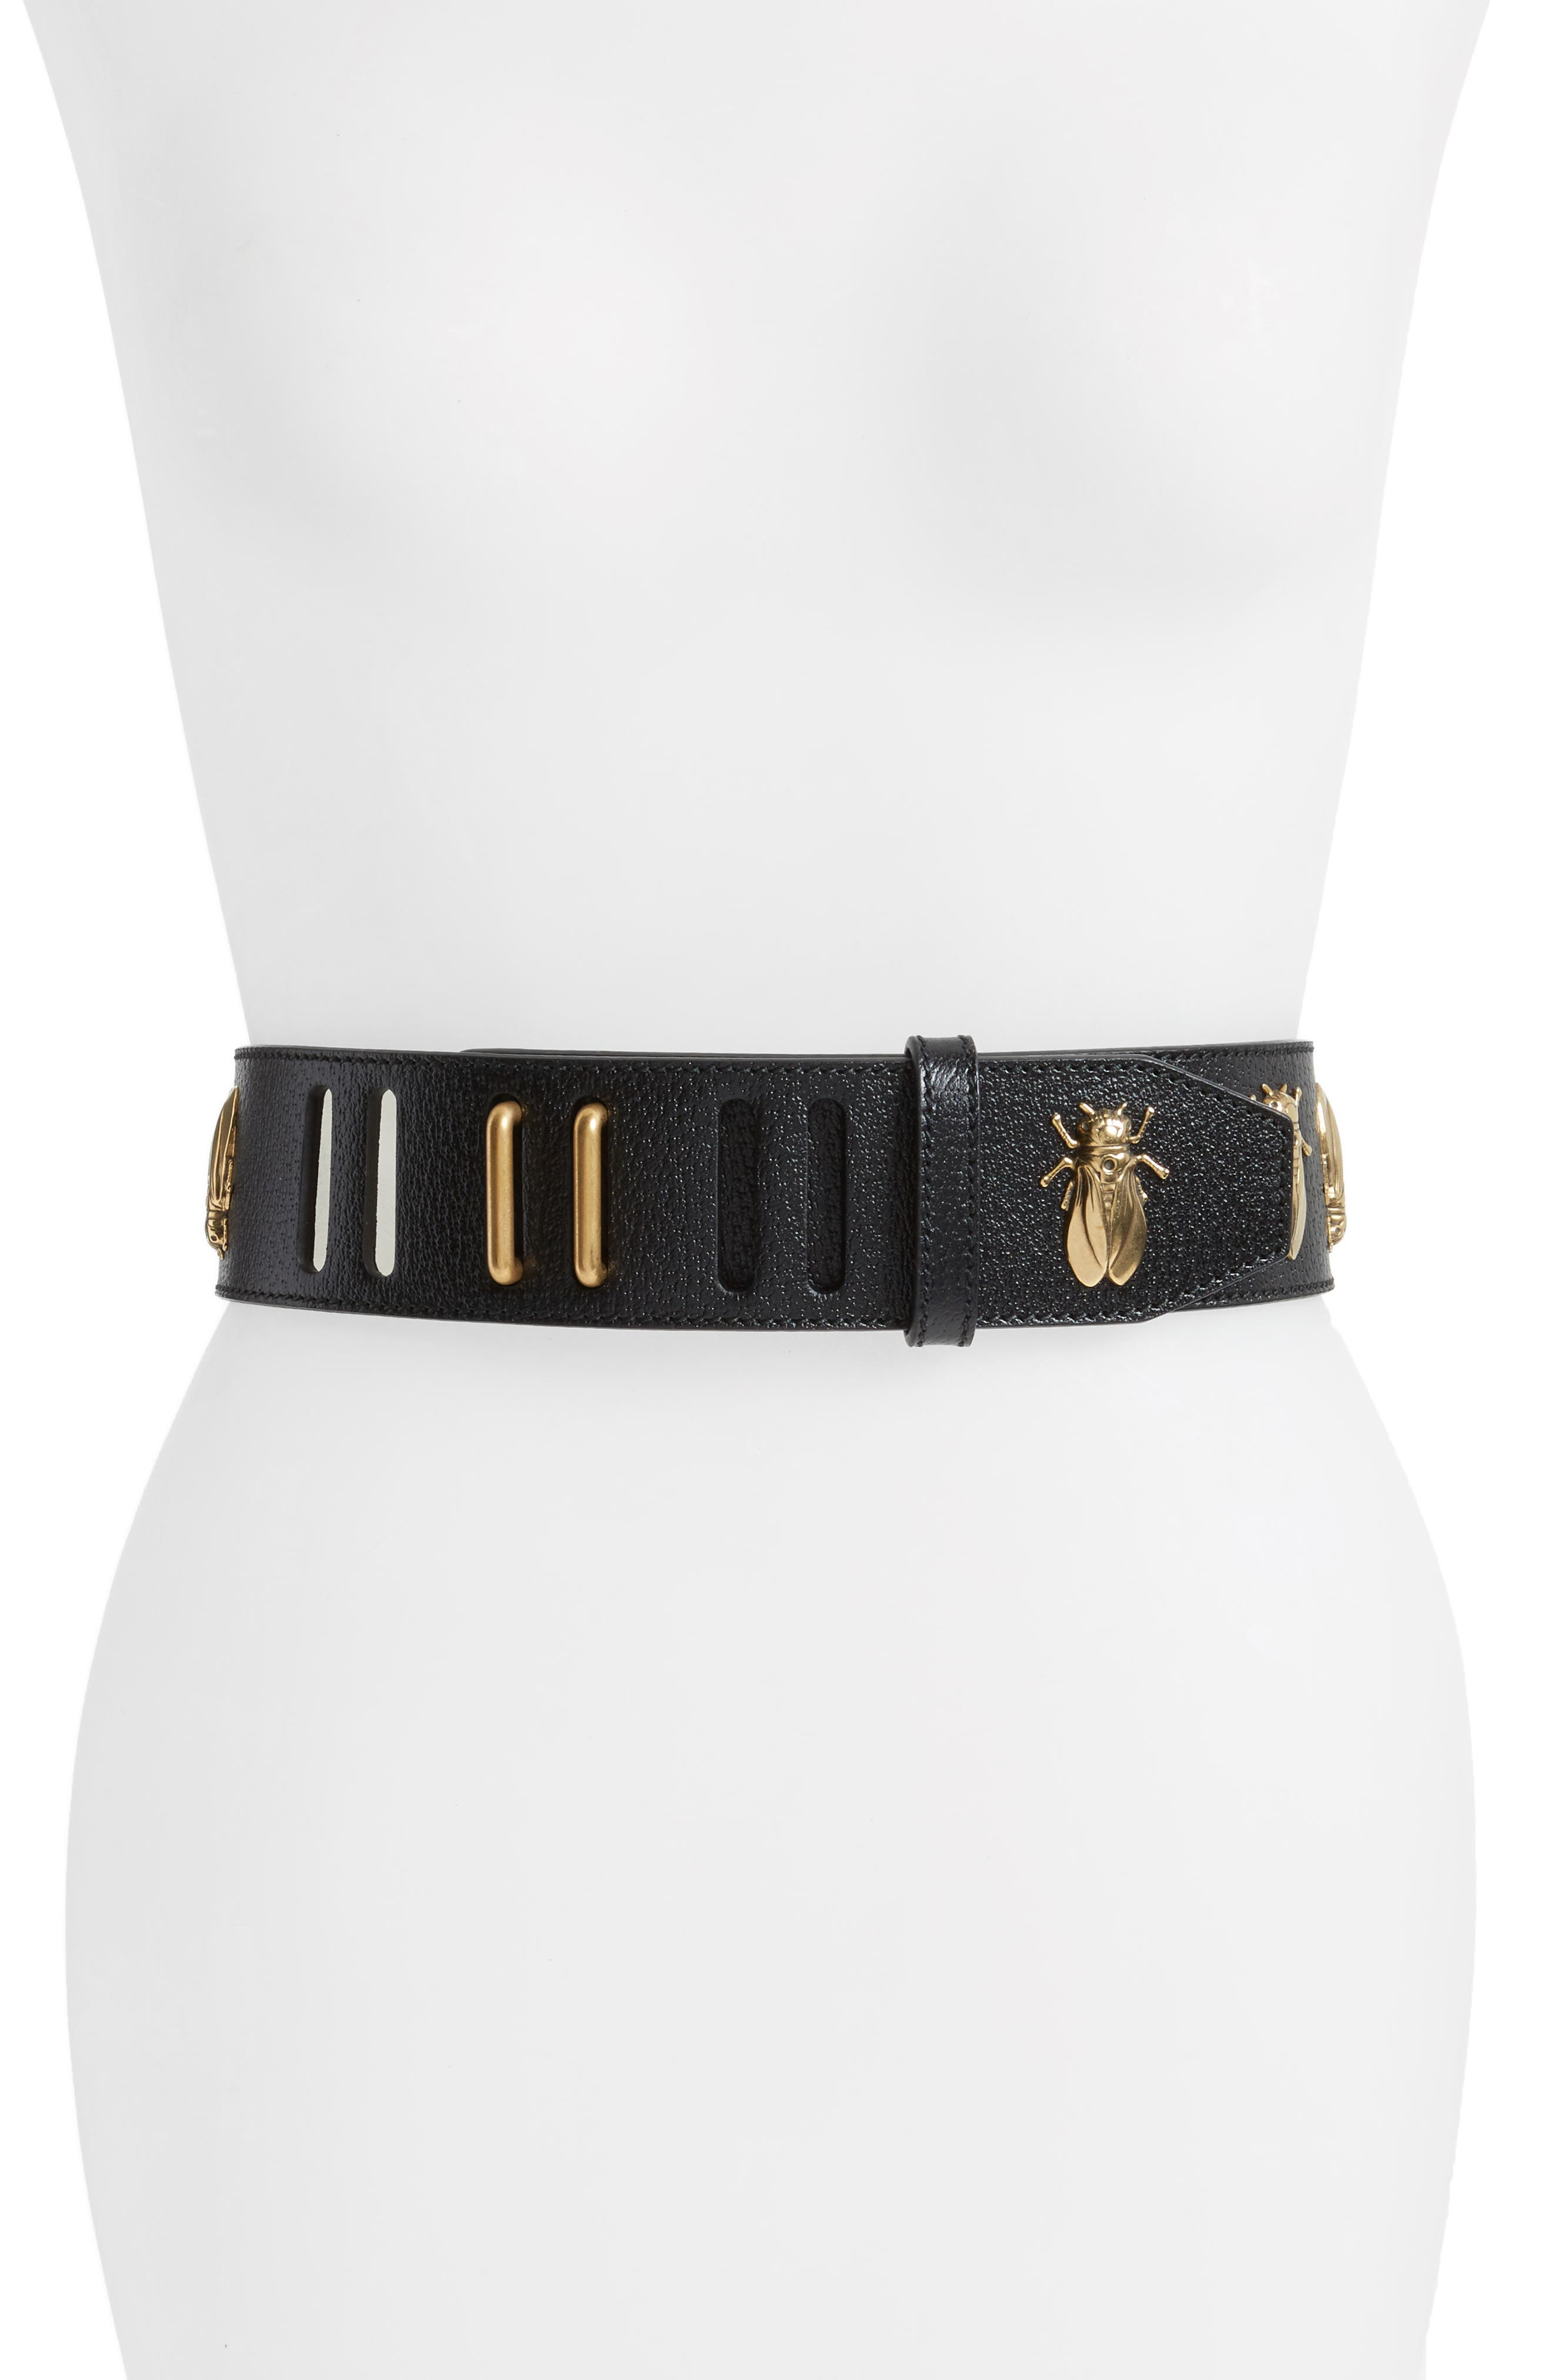 Bees Leather Belt,                             Main thumbnail 1, color,